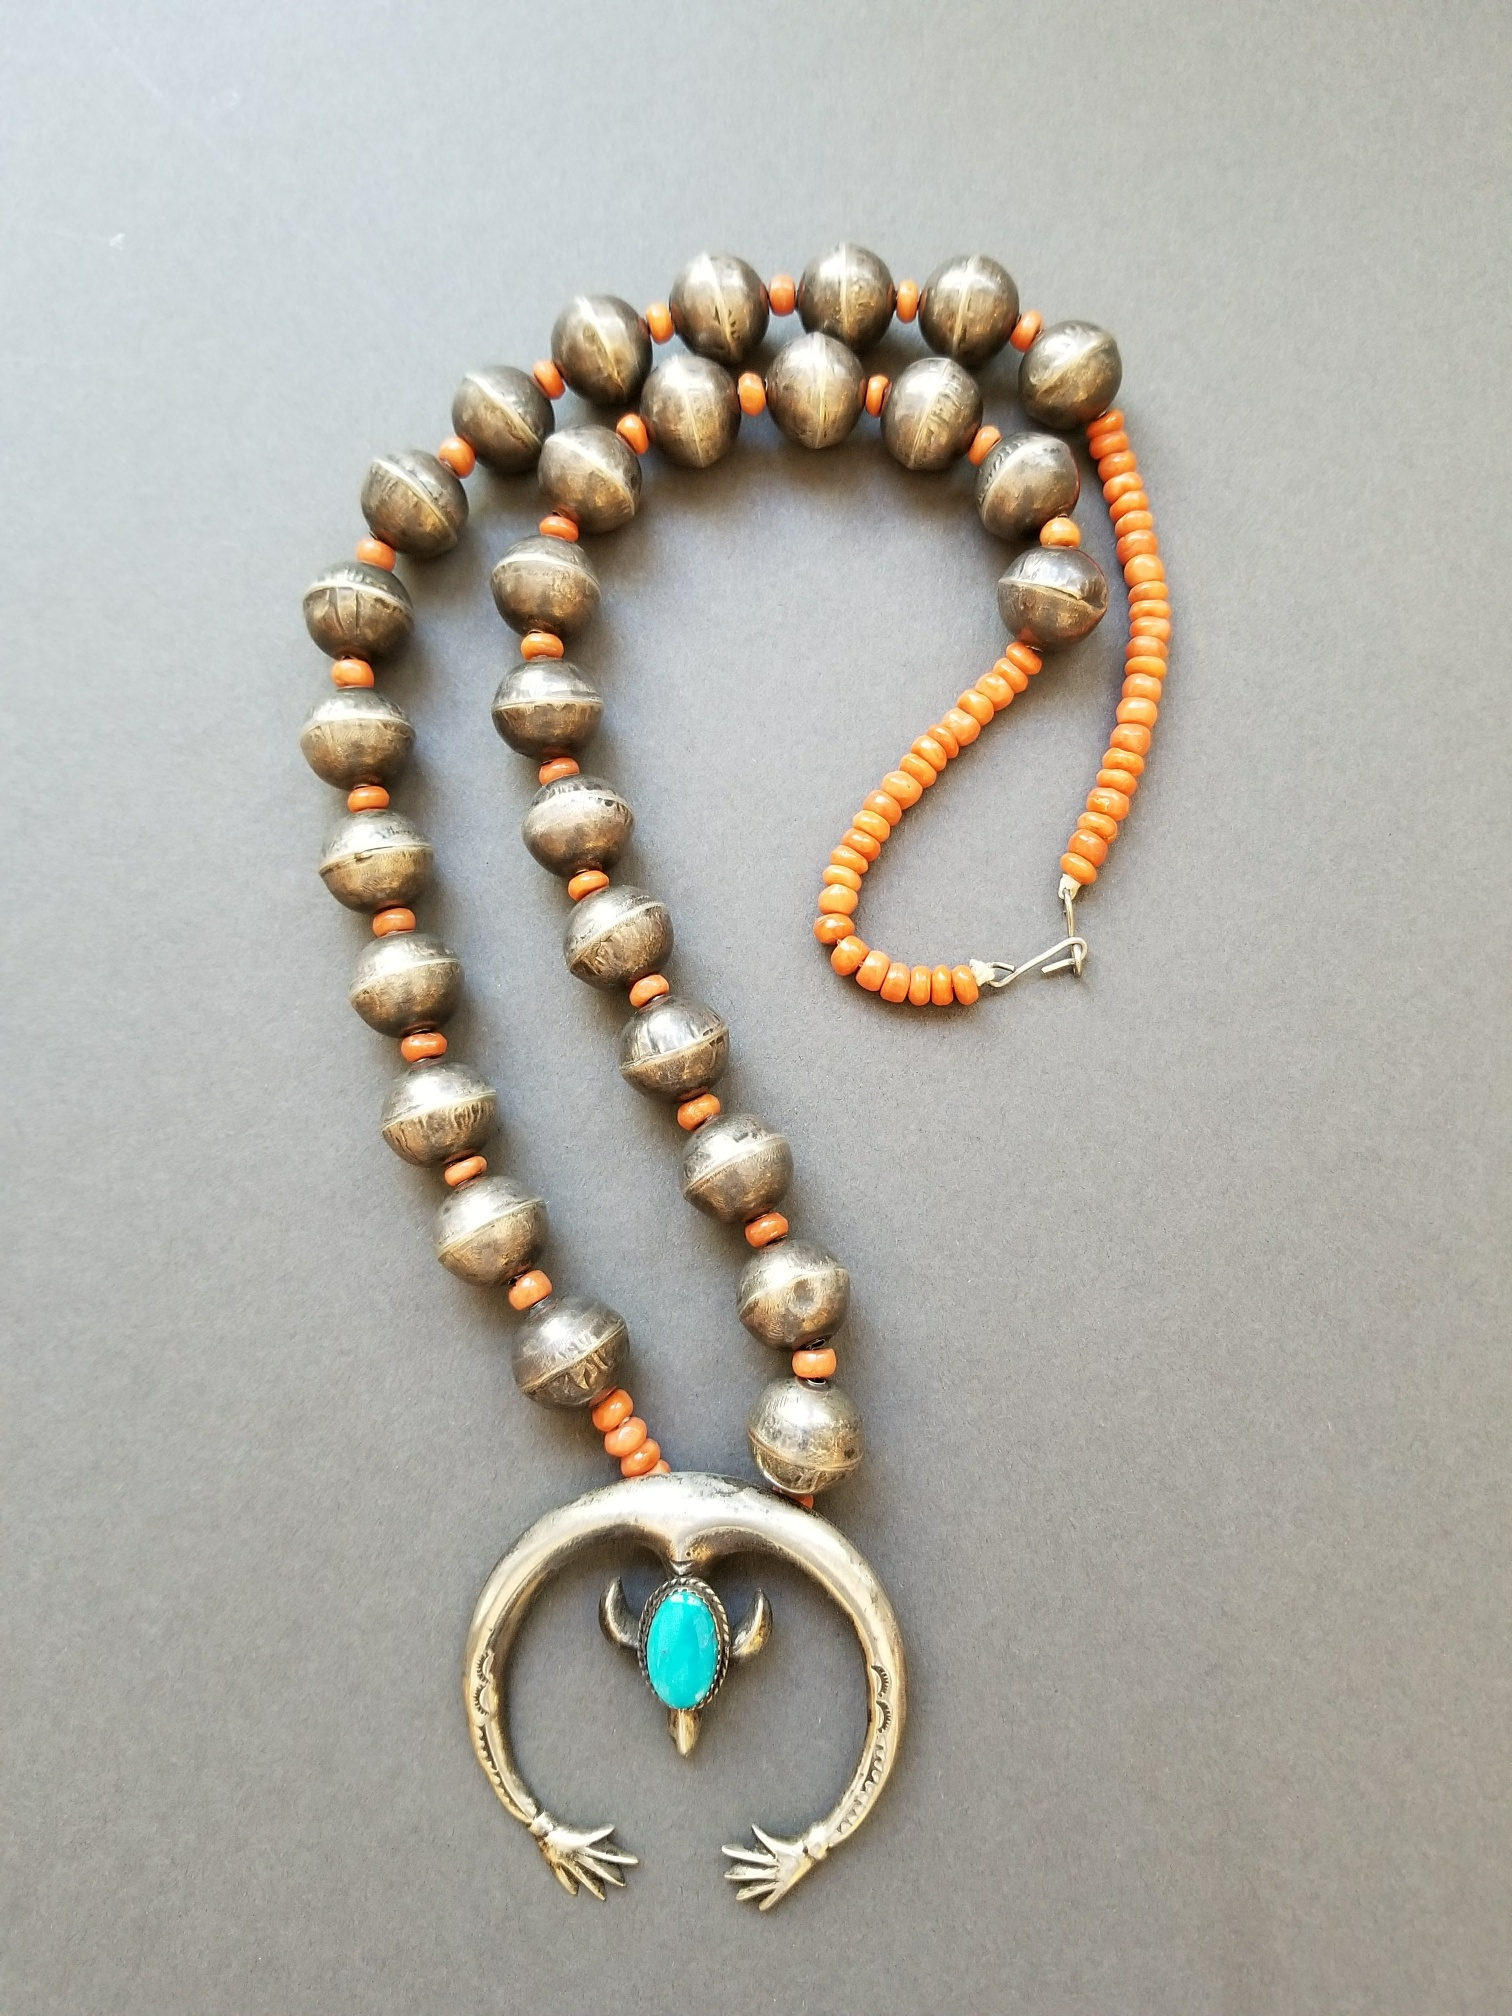 Naja necklace with handmade beads